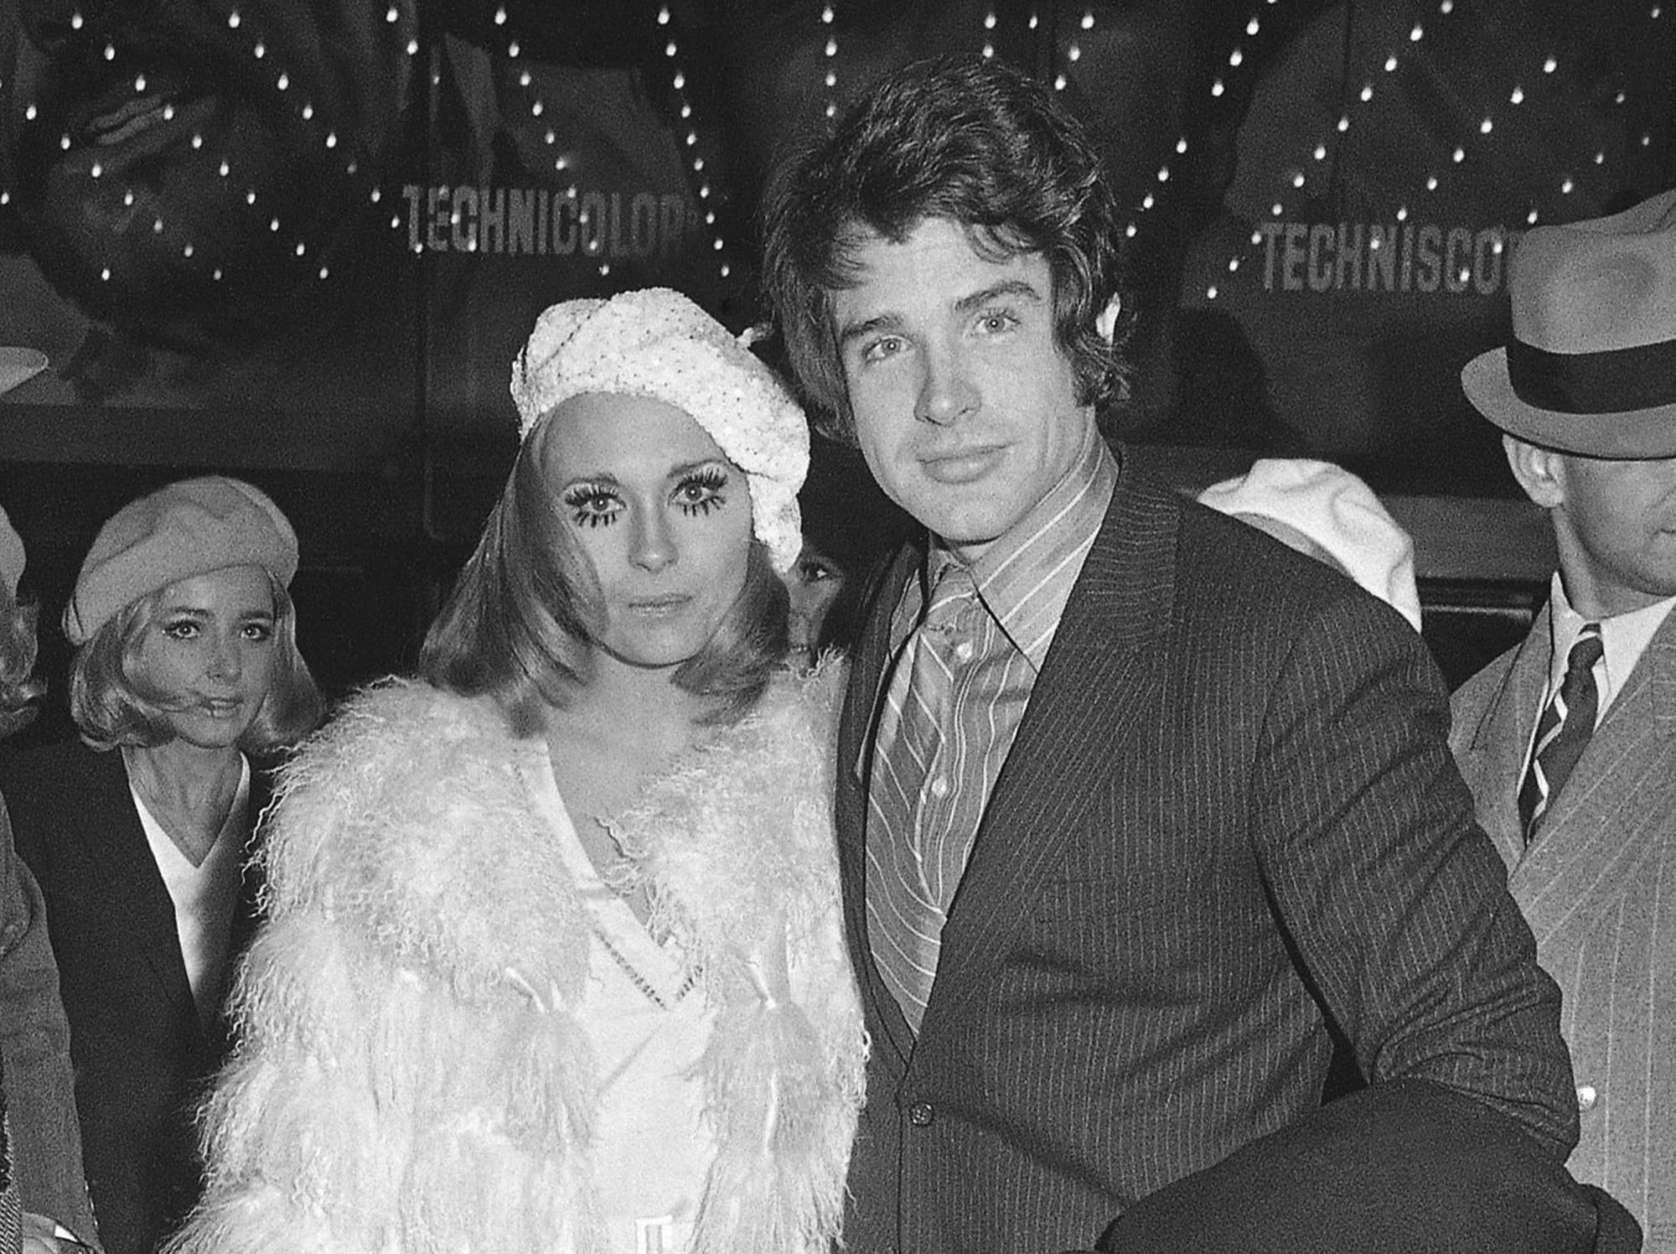 """FILE - In this Jan. 24, 1968, file photo,  Faye Dunaway, left, and Warren Beatty appear at the Paris premiere of their film, """"Bonnie and Clyde."""" The film premiered in the U.S. in September 1967. The film, starring Beatty and Faye as the fatalistic outlaws, would become a cultural sensation, one of the biggest box office hits up until that point and a 10-time Oscar nominee. But on its initial release on August 13 in the midst of the Summer of Love, """"Bonnie and Clyde"""" was virtually gunned down by bad reviews and a tepid reception at the box office. (AP Photo/Michel Lipchitz, File)"""